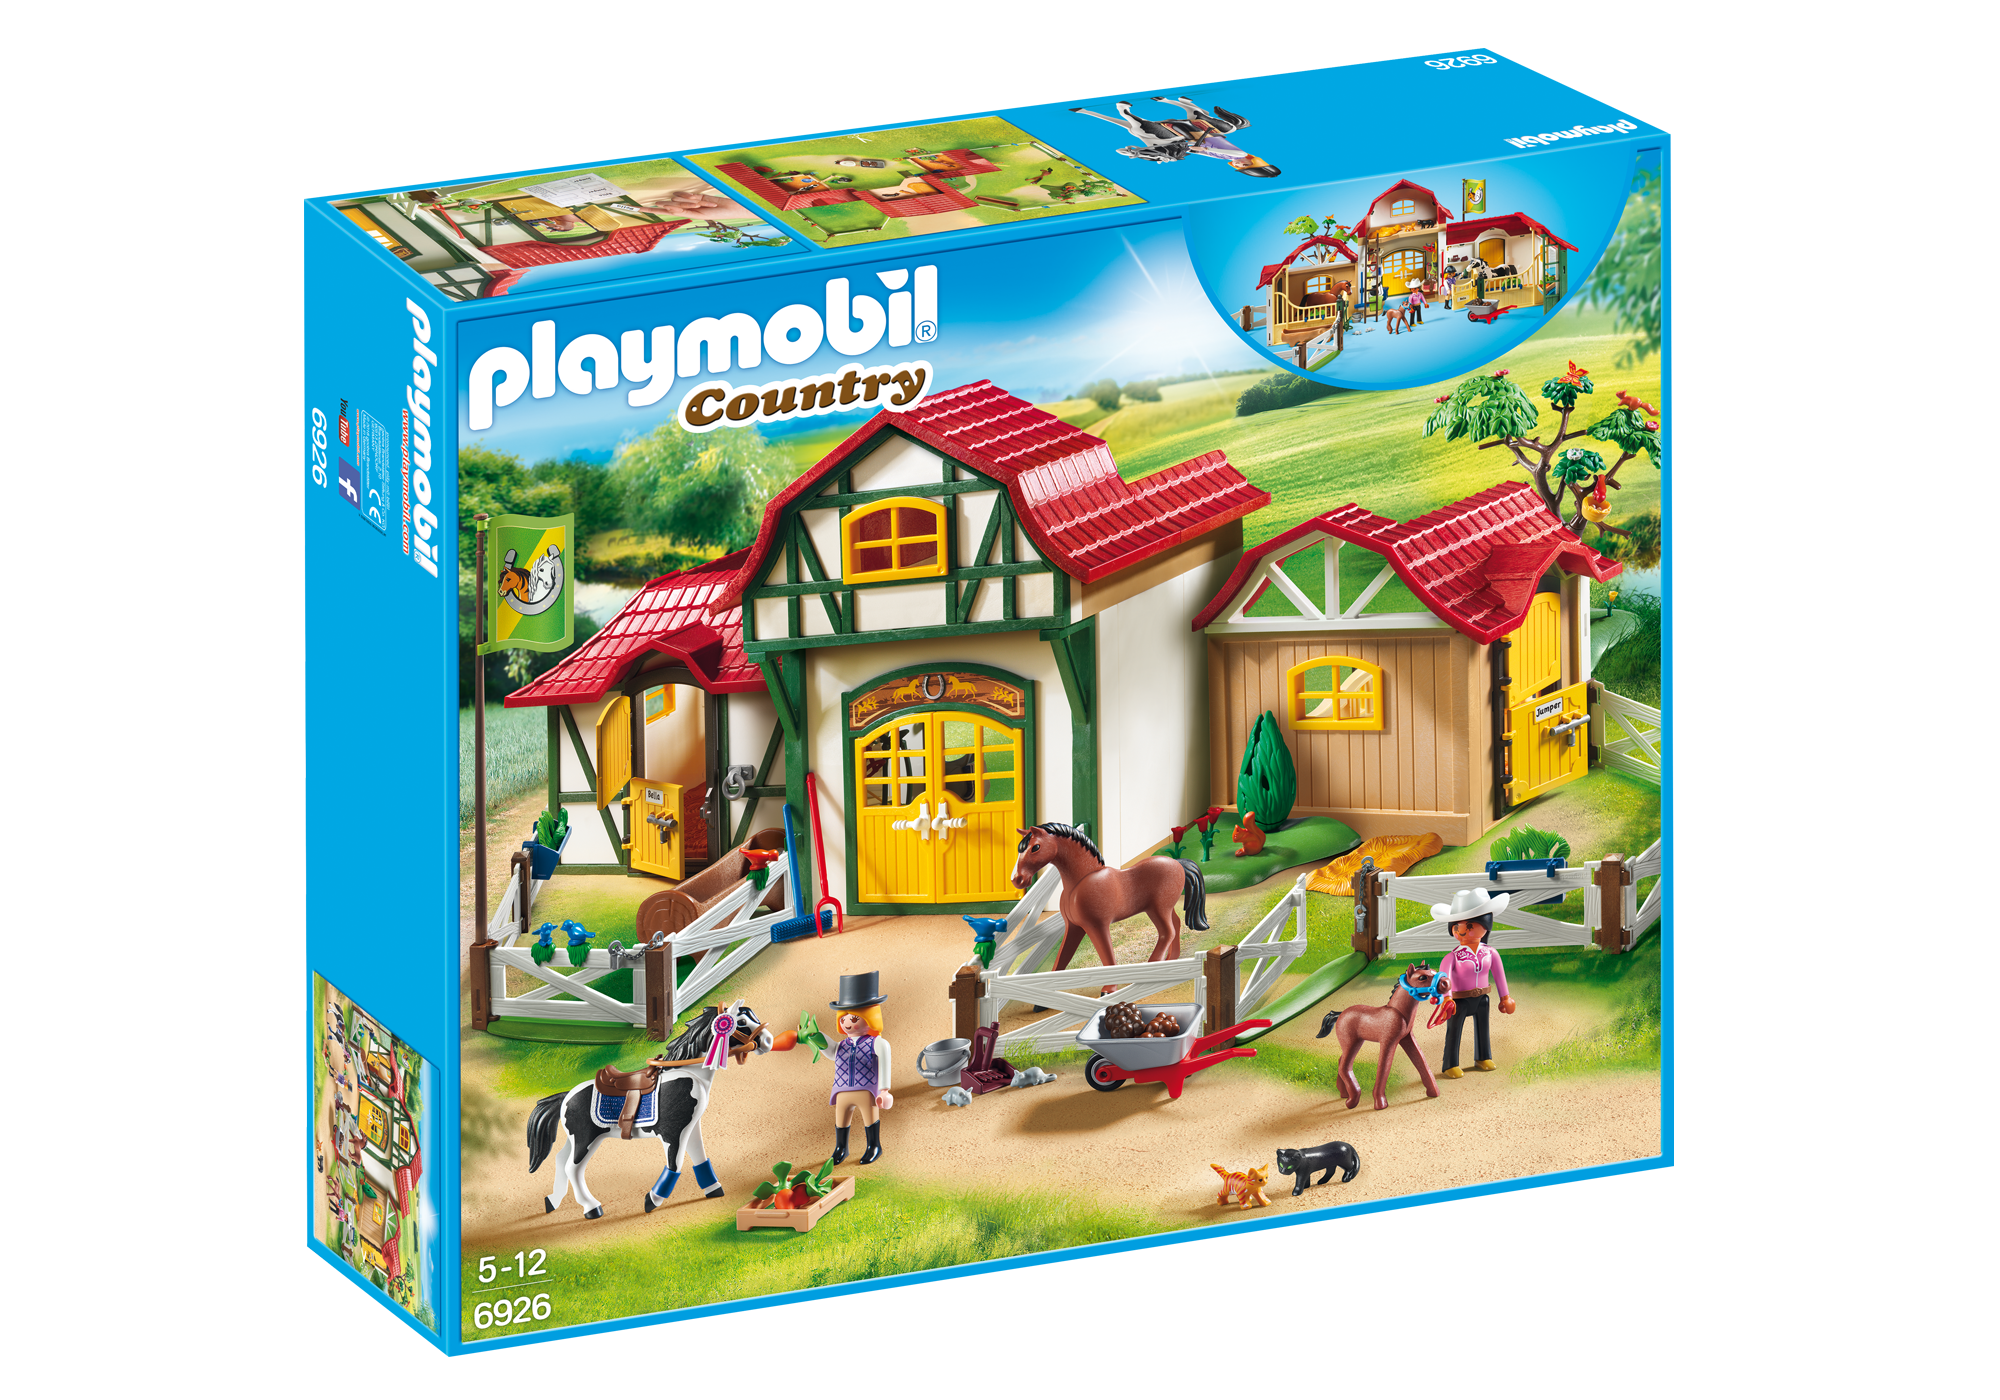 http://media.playmobil.com/i/playmobil/6926_product_box_front